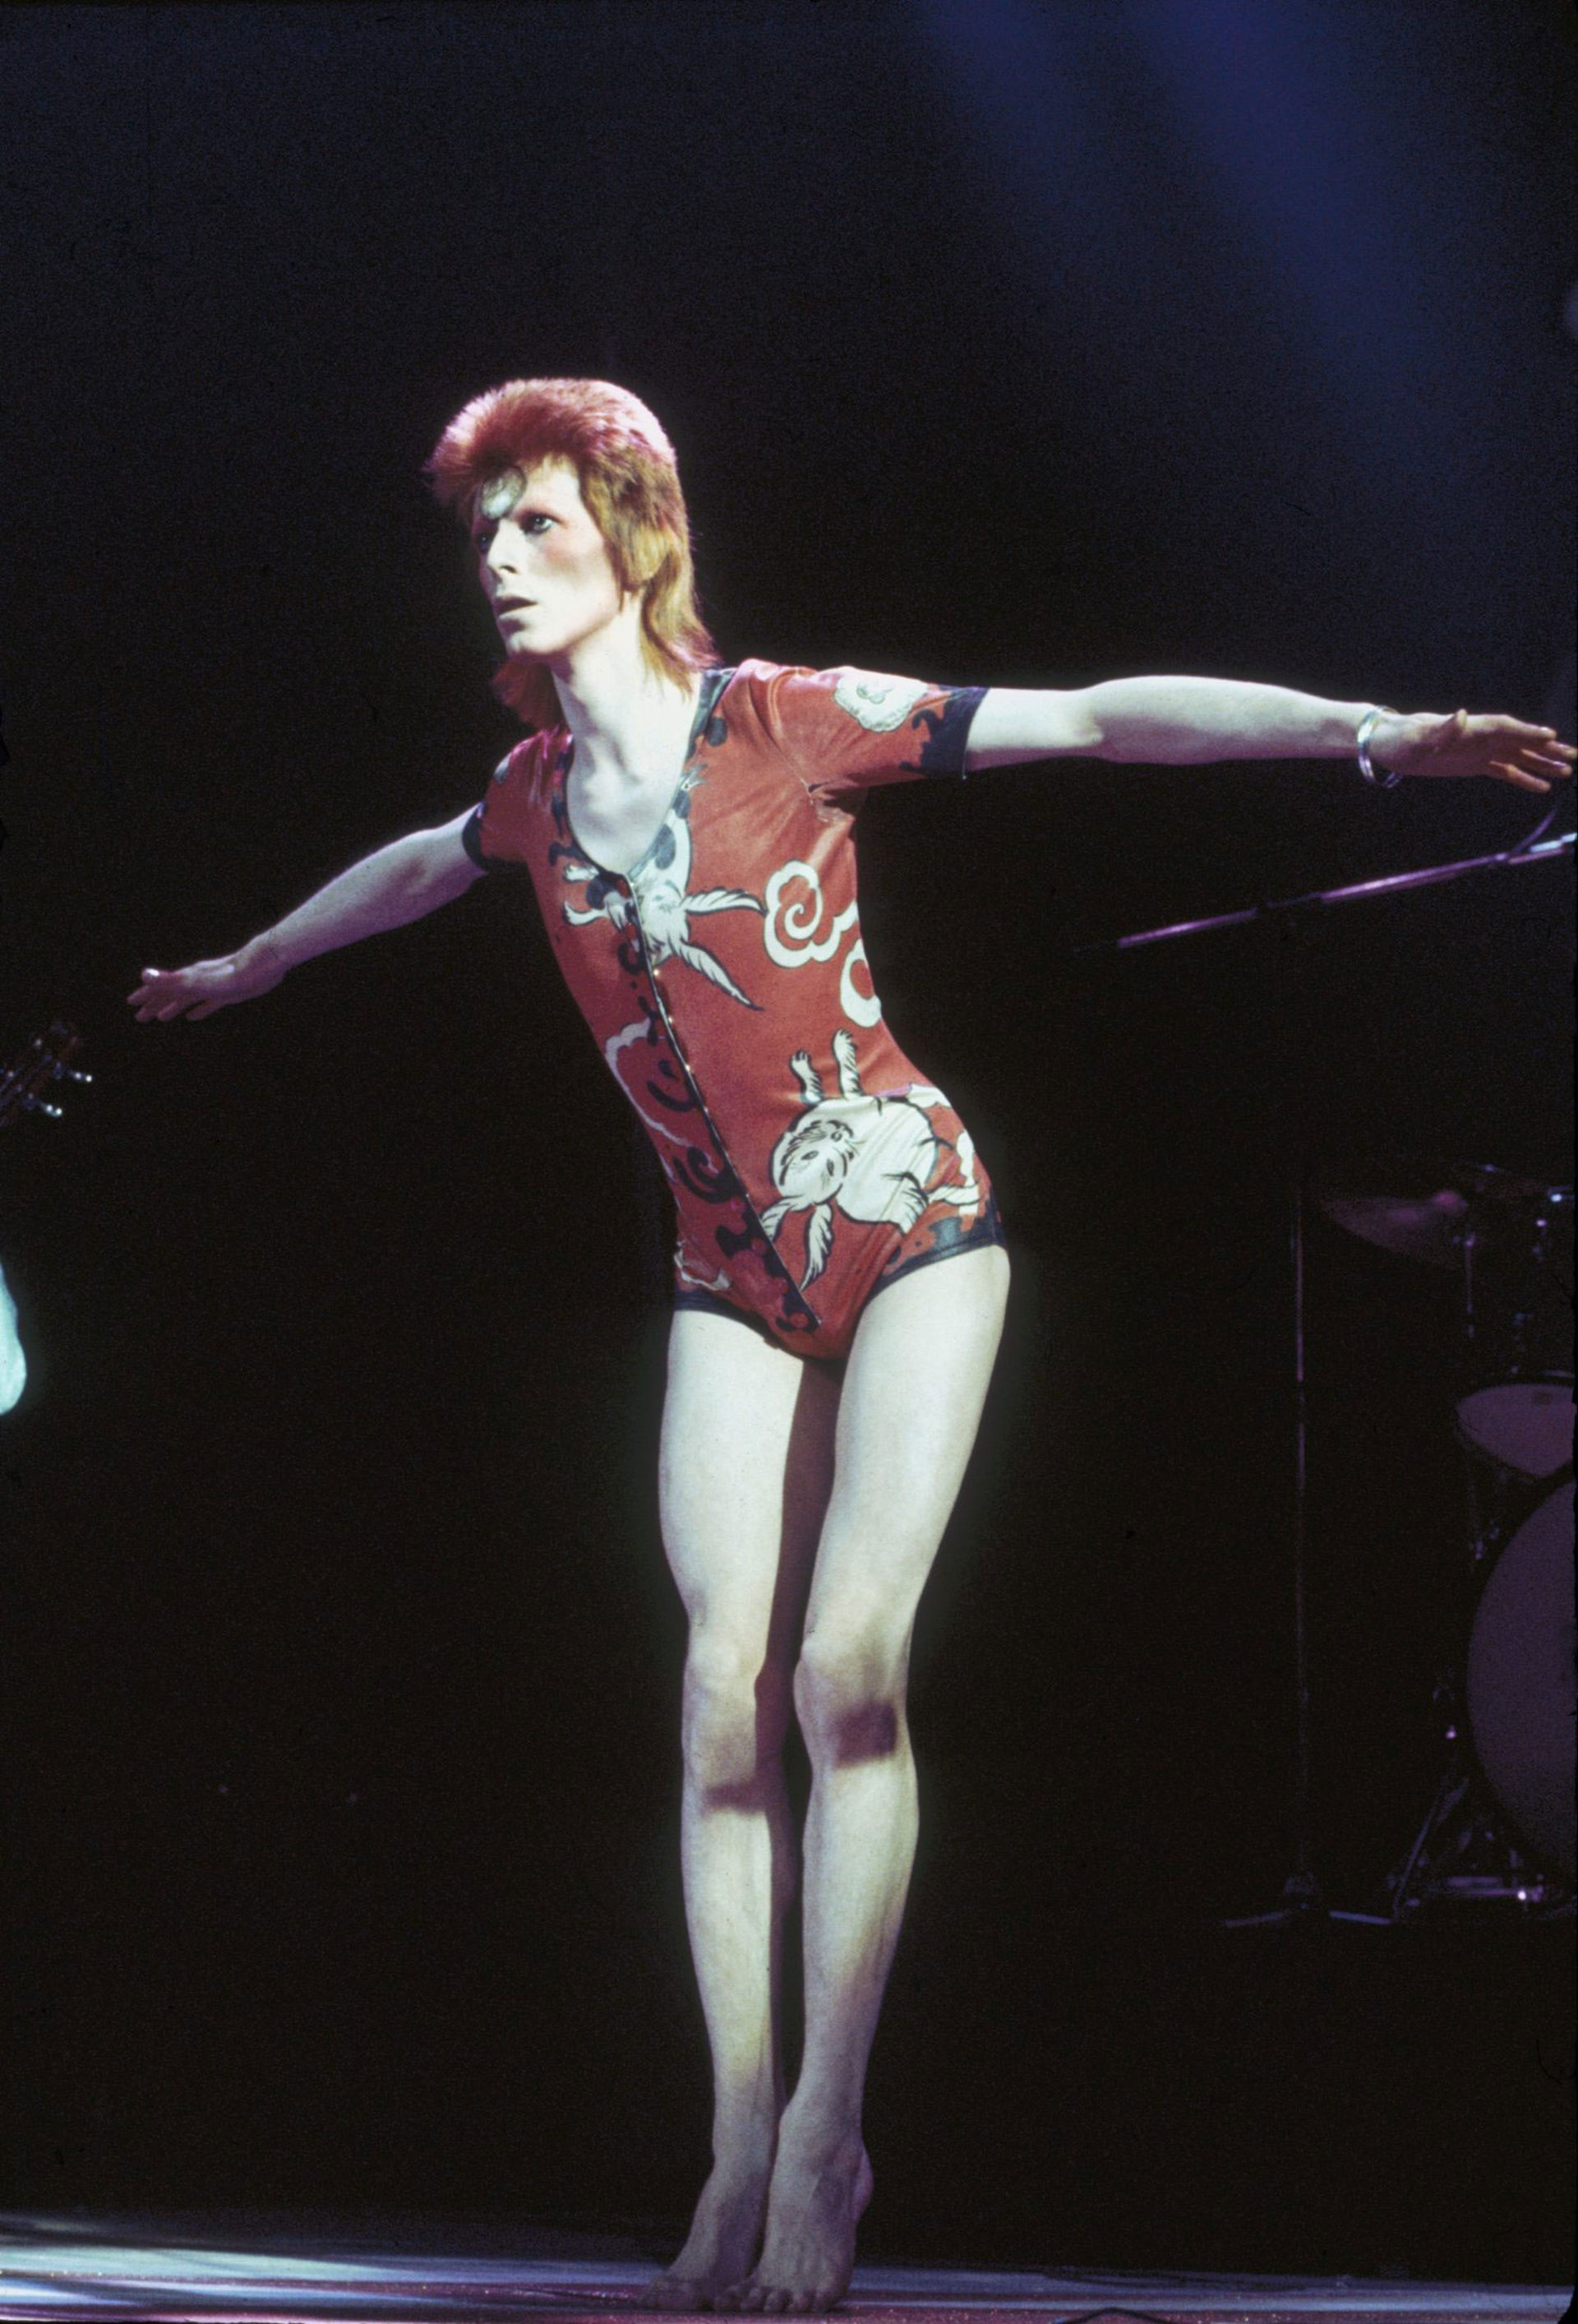 David Bowie performing as Ziggy Stardust, in his 'woodland creatures' costume designed by Kansai Yamamoto, at the Hammersmith Odeon, 1973.